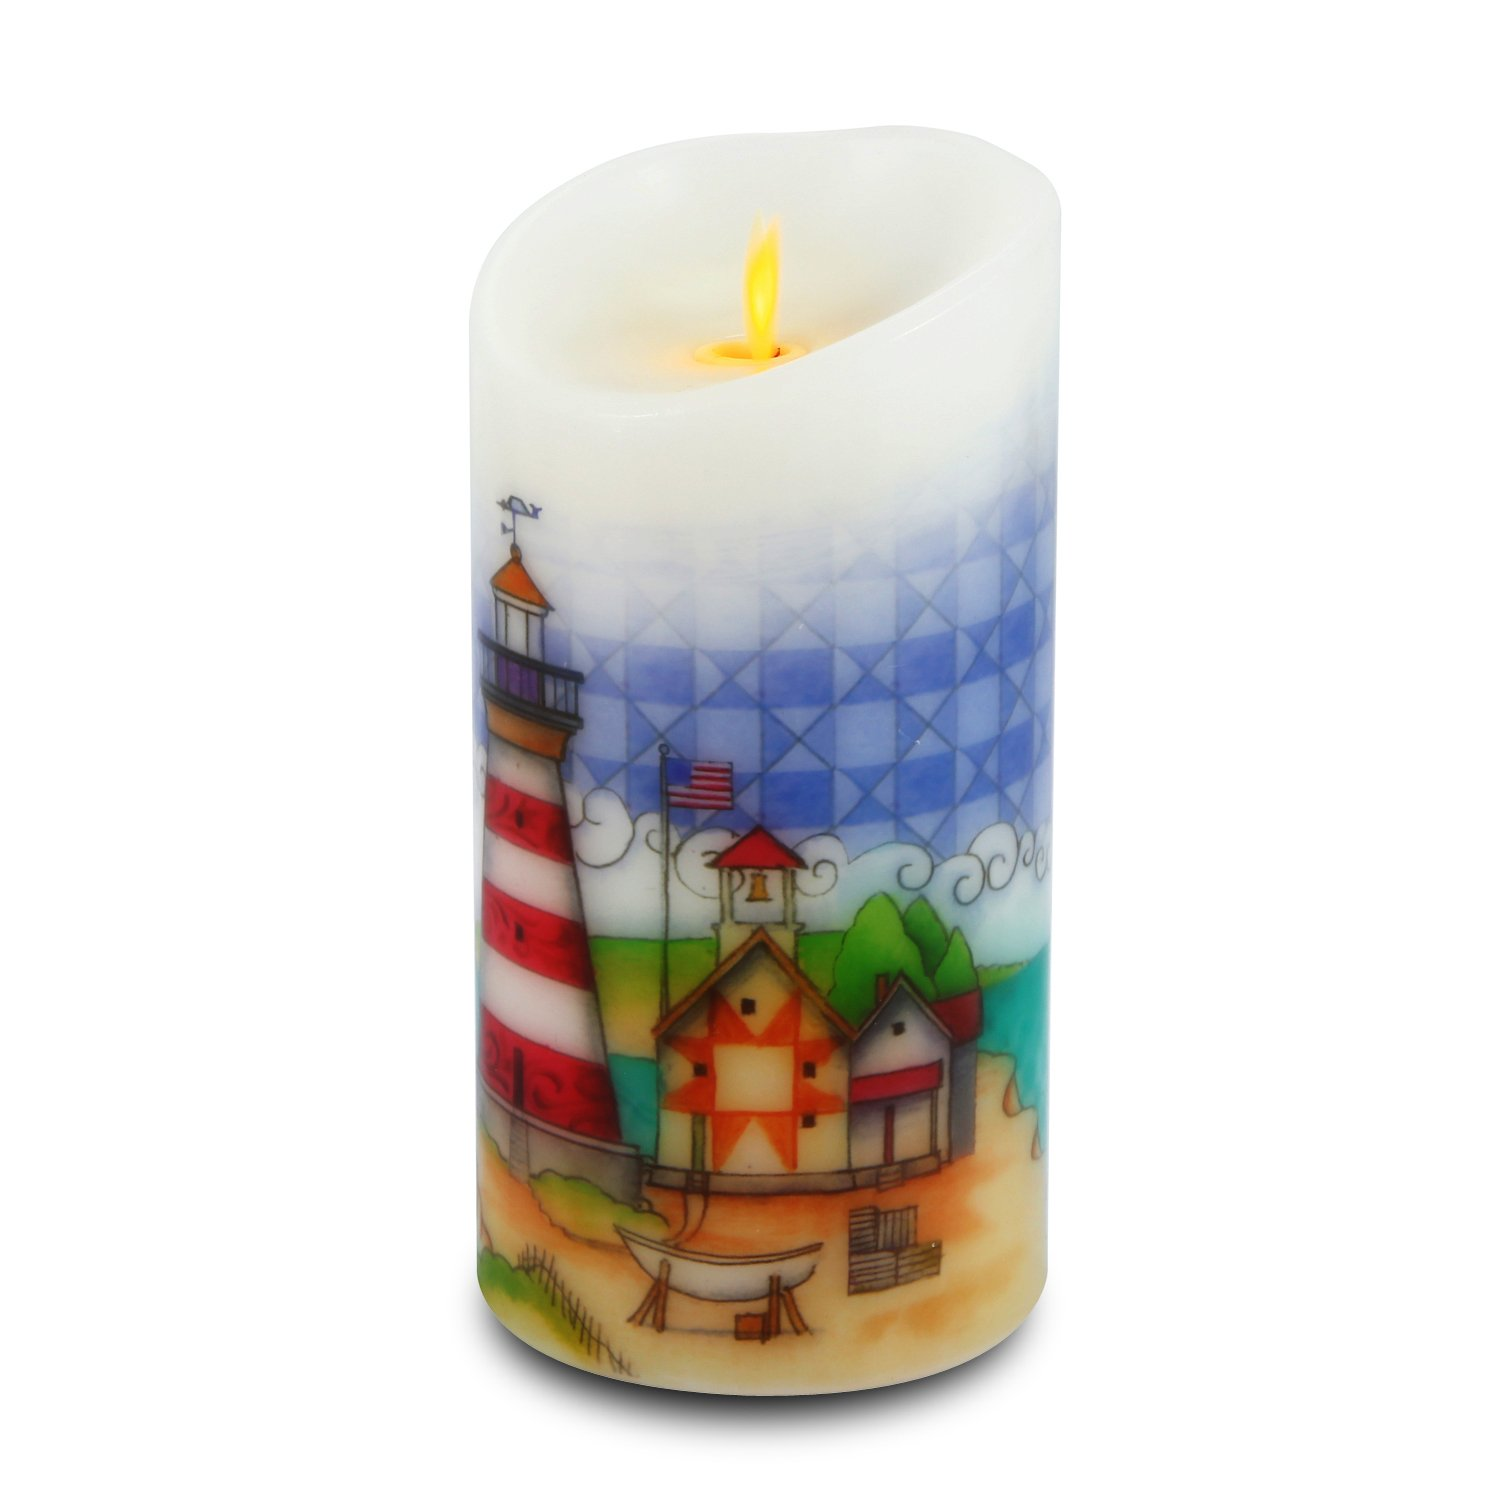 Ksperway Flameless Wax Candles, Moving Wick LED Pillar Candle with Blow ON/Off Control,Timer and Remote 3.5 by 7 Inch Picture (Lighthouse) by Ksperway (Image #4)